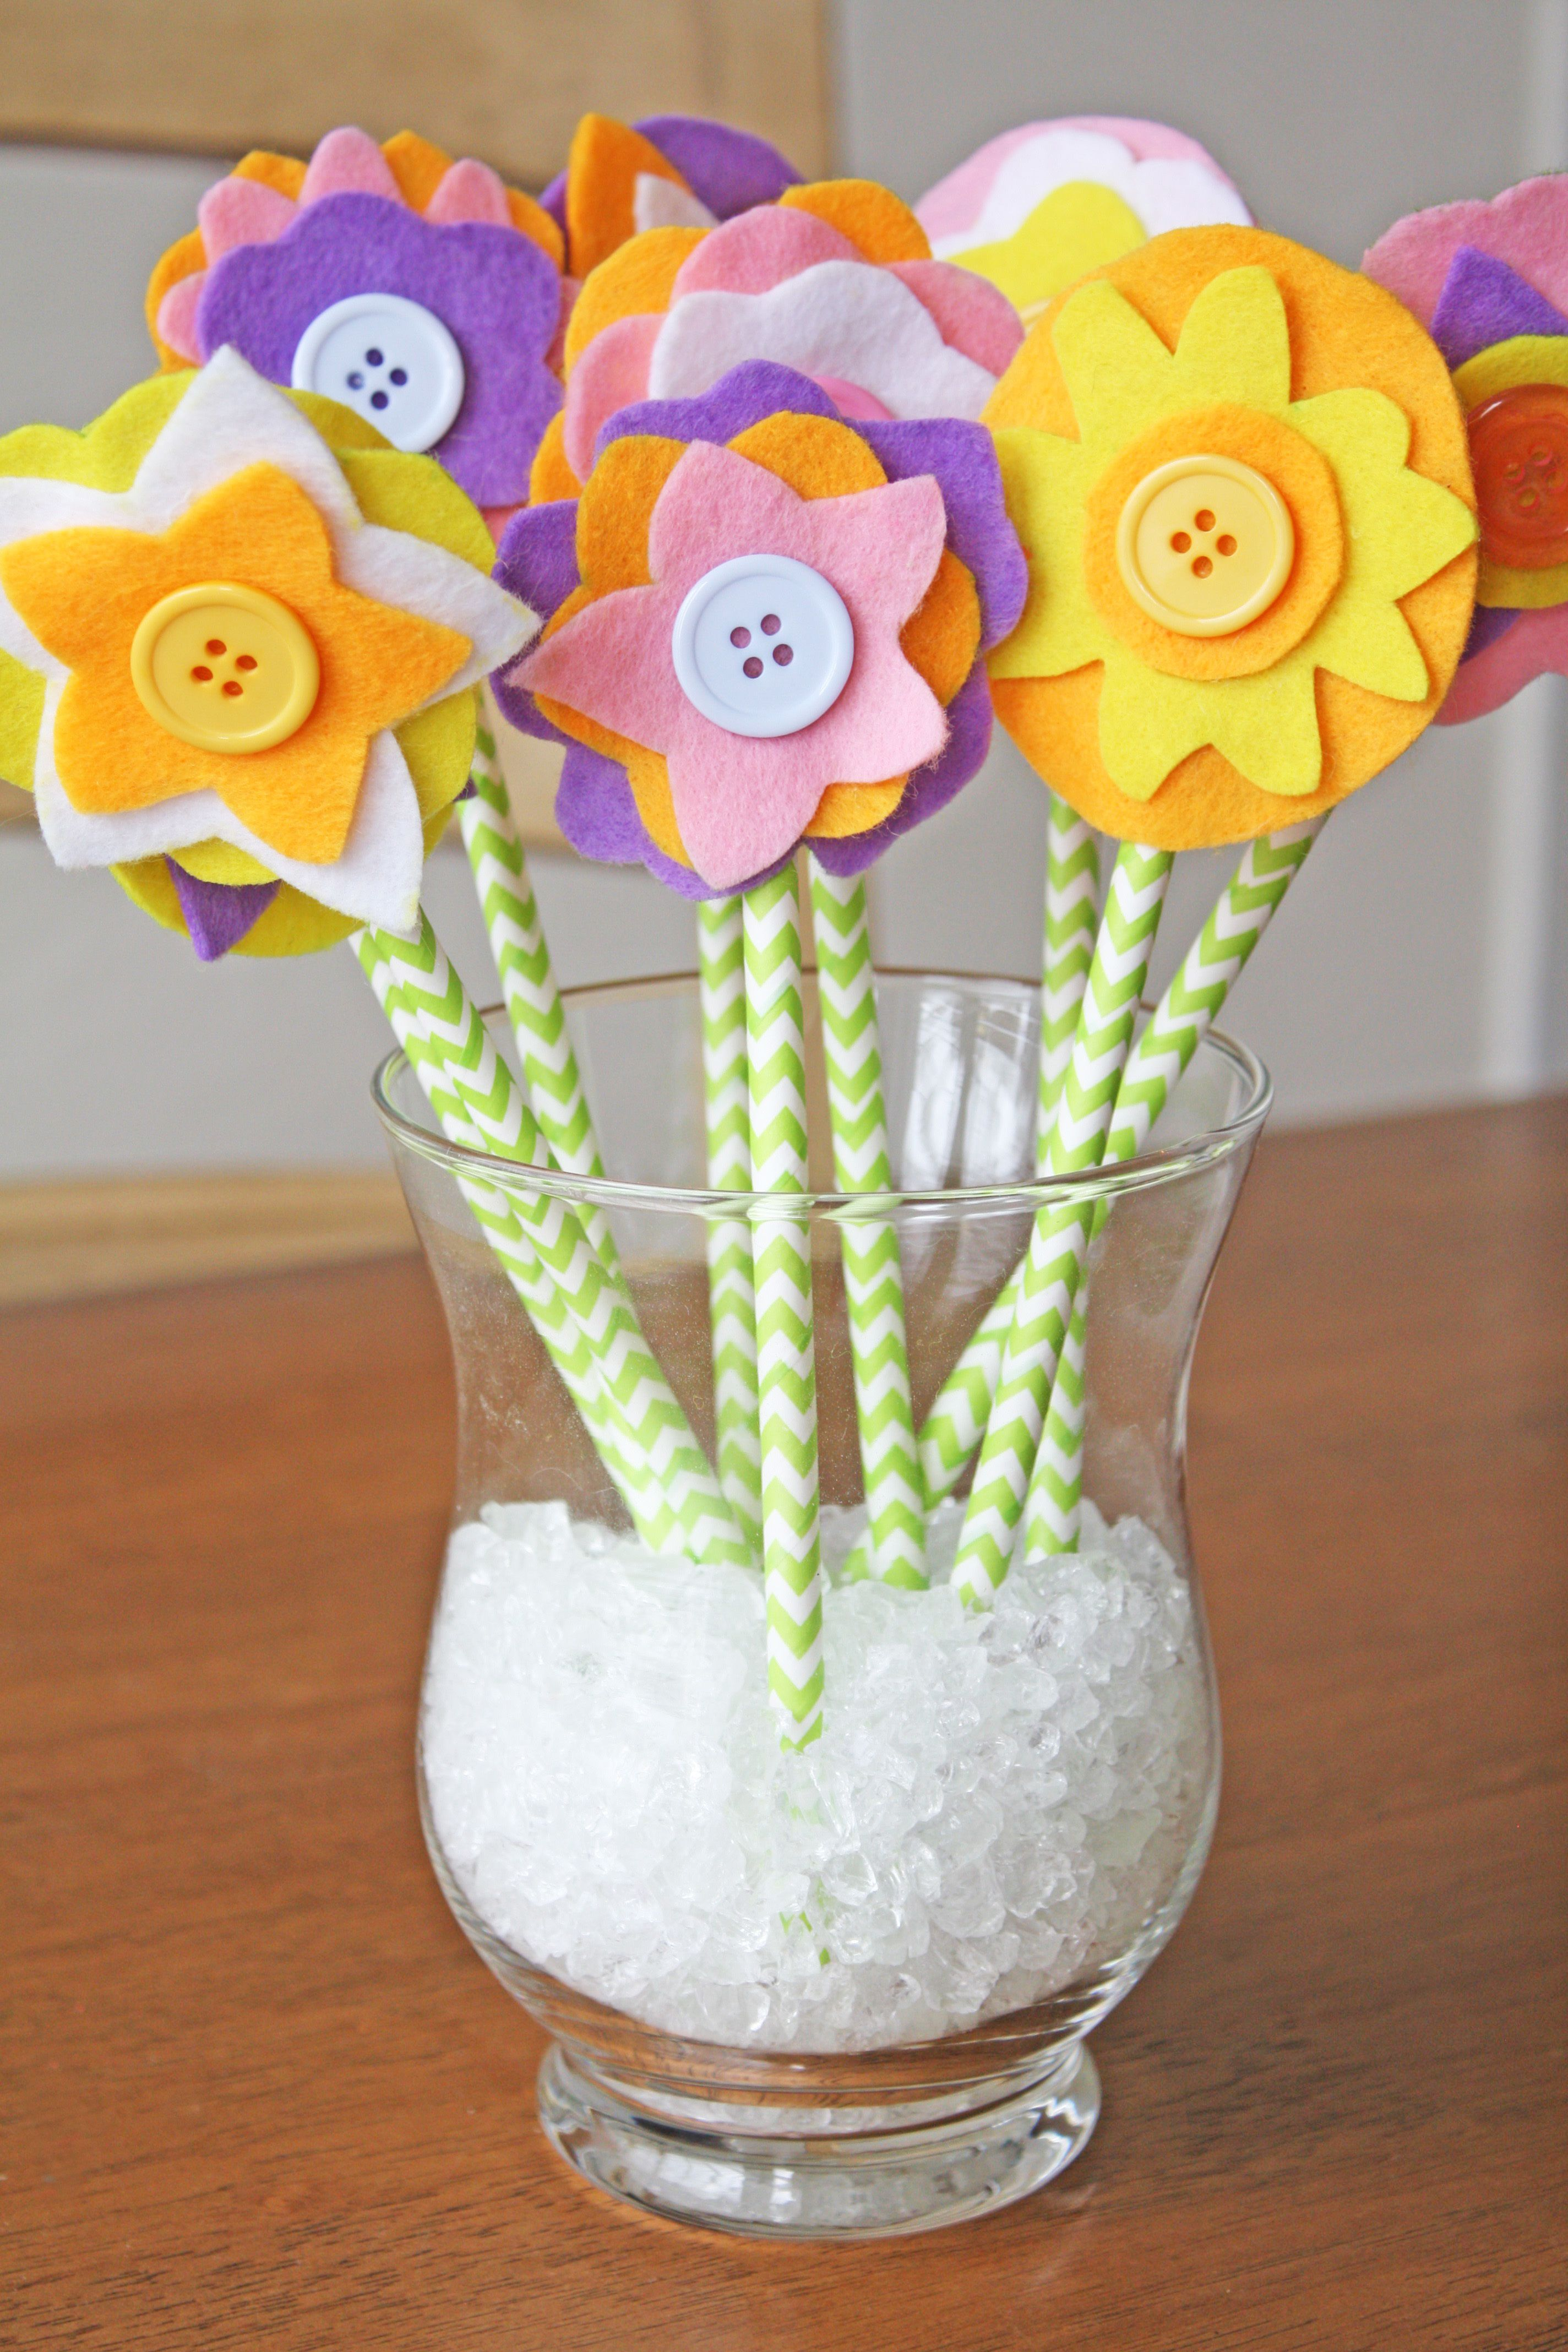 Diy Felt Flower Bouquet Holidays New Years Fathers Day